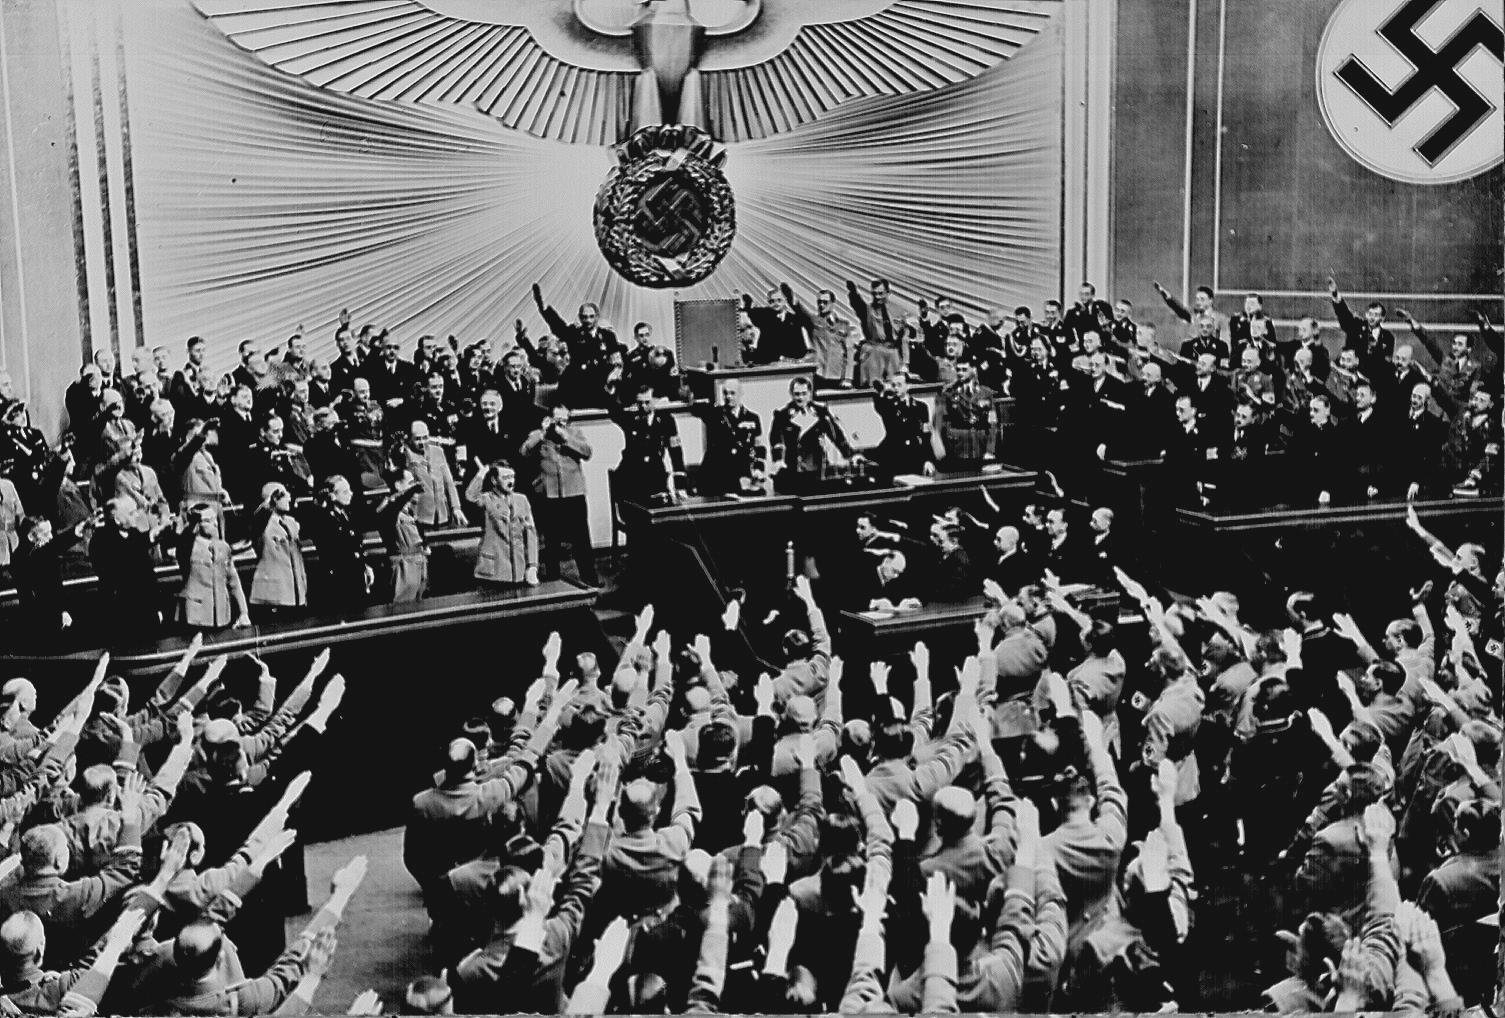 Ovation for Hitler in the Reichstag after announcing the successful Anschluss - March 1938